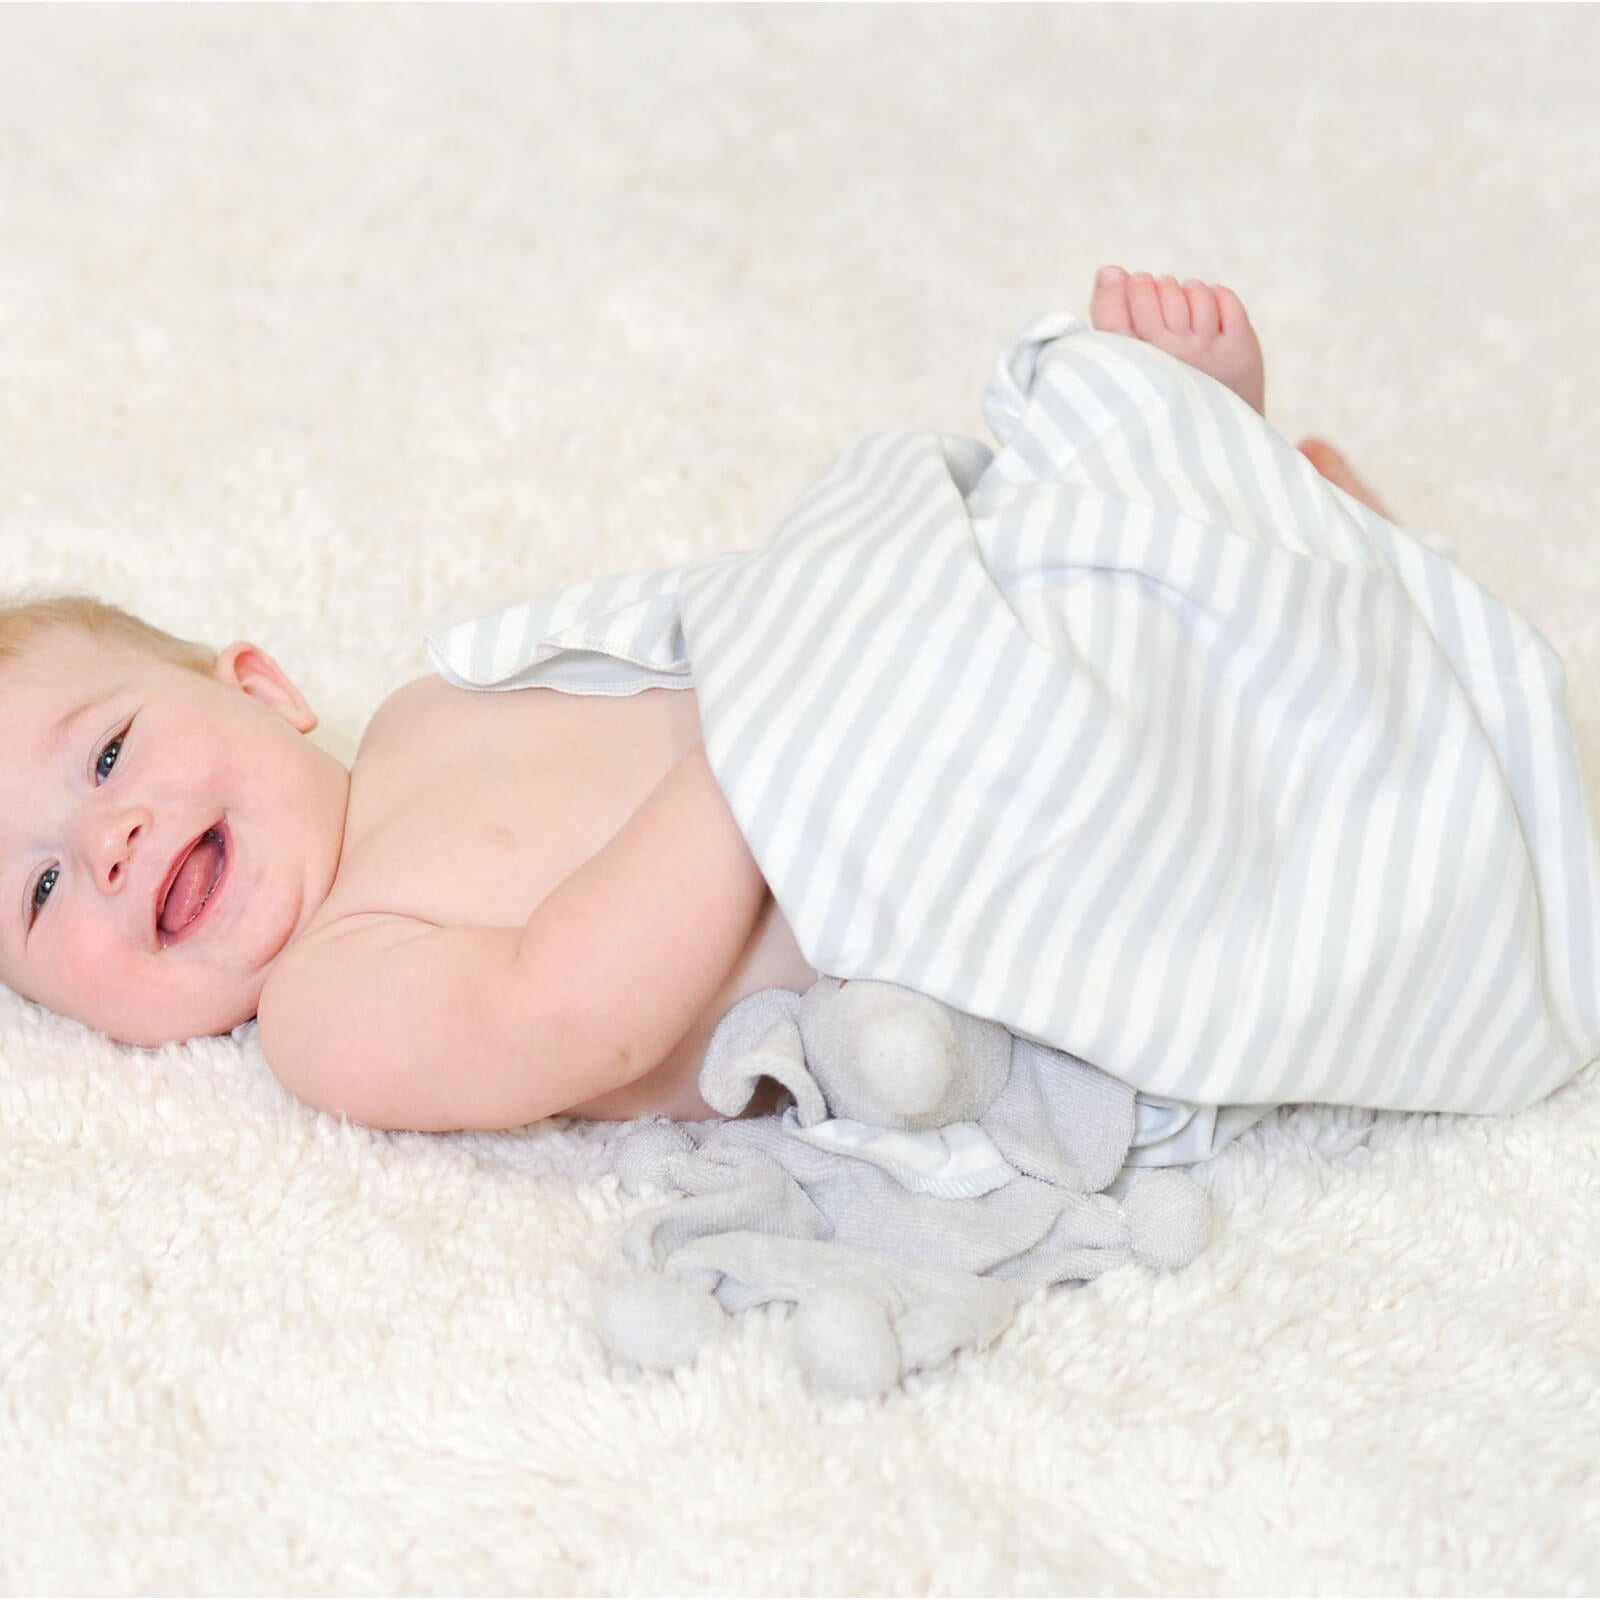 Organic Cotton Swaddle Blanket - White and Grey Striped Jersey